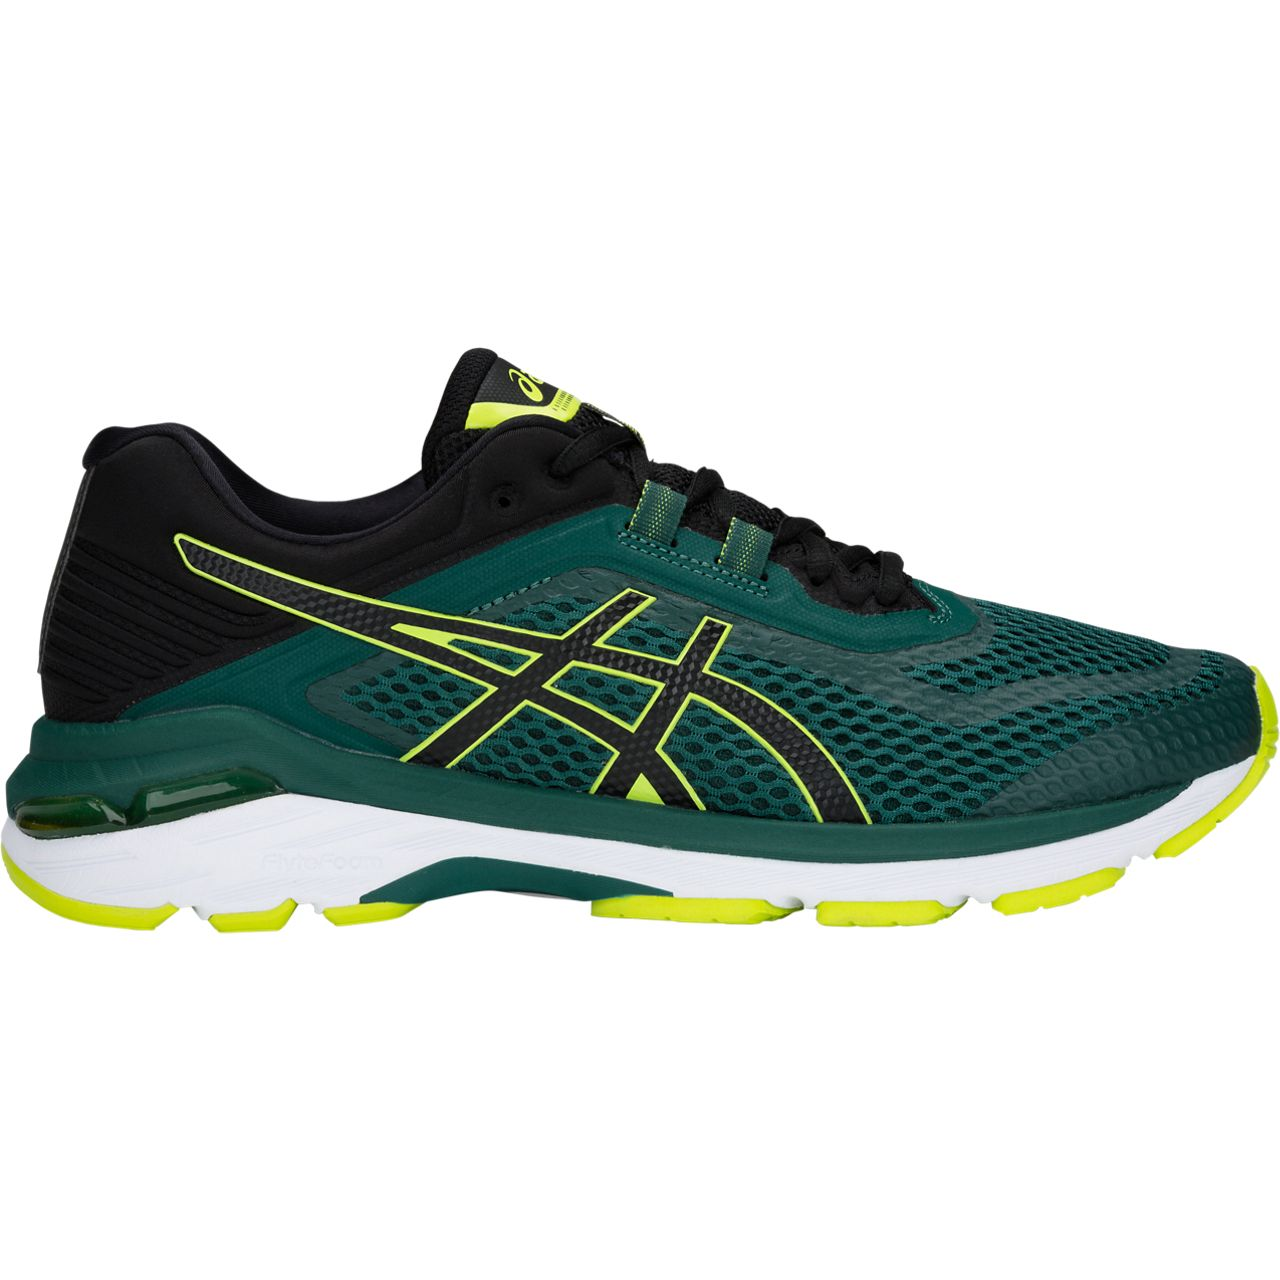 Men's GT-2000 6 Running Shoe - Everglade/Black – Gazelle